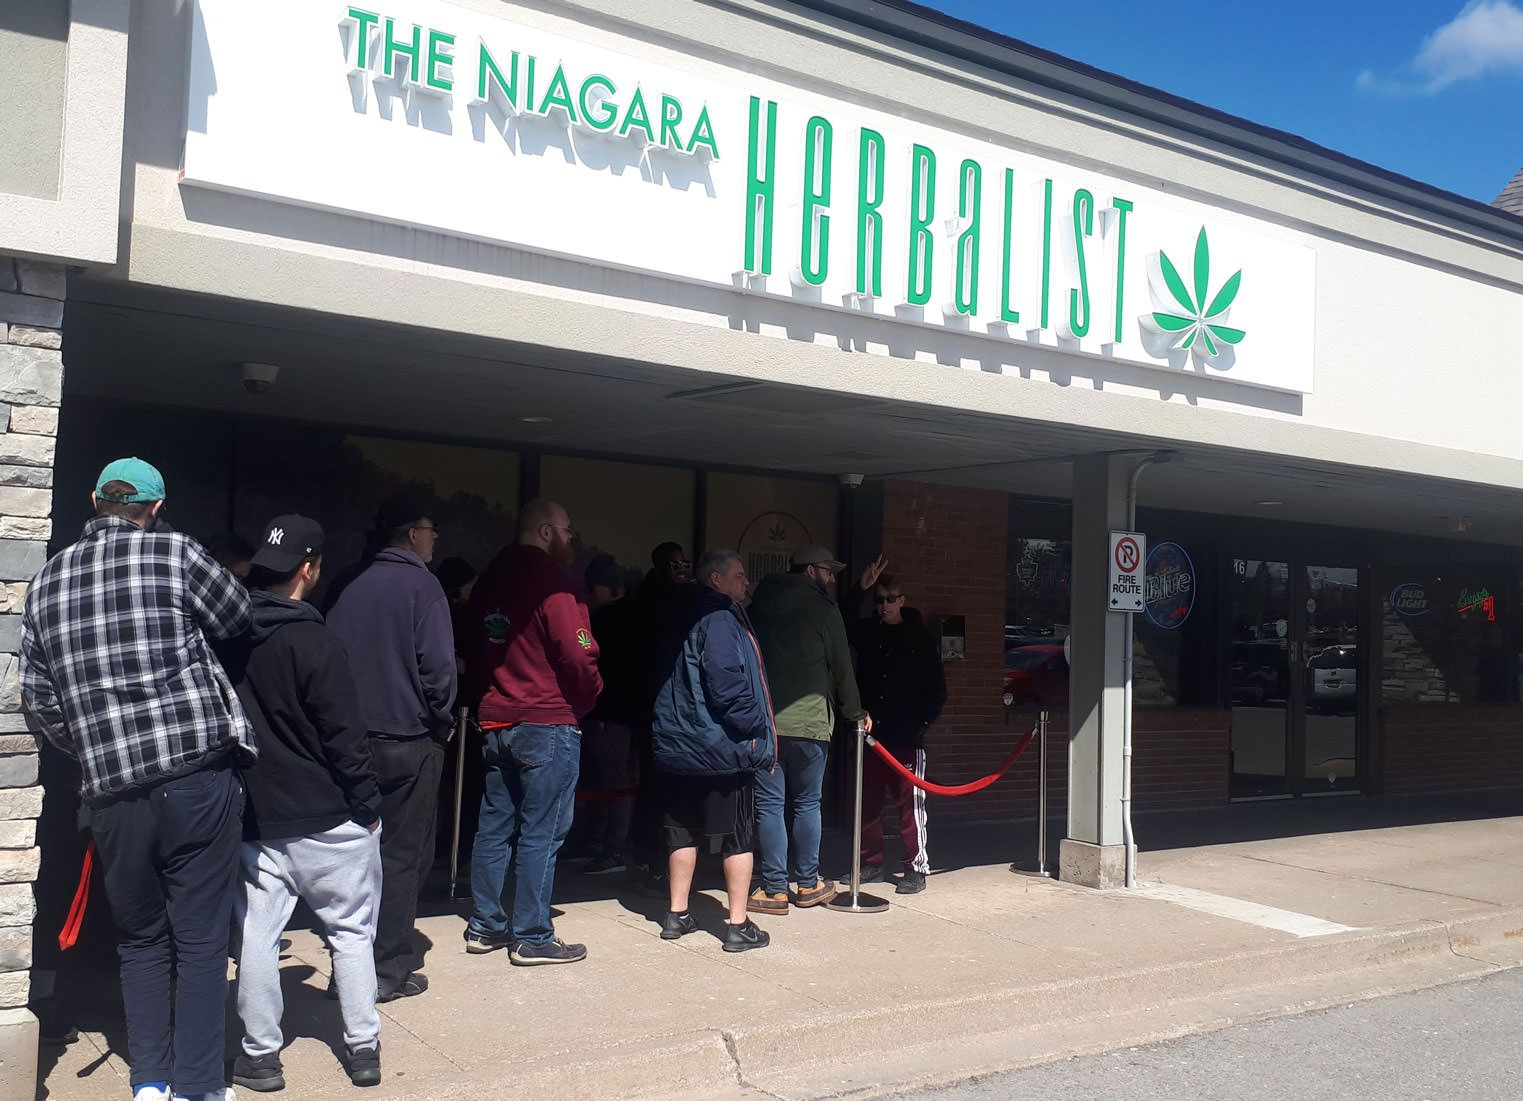 Ontario cannabis stores open, Ontario's first 25 recreational cannabis stores could contribute CA$500 million to industry